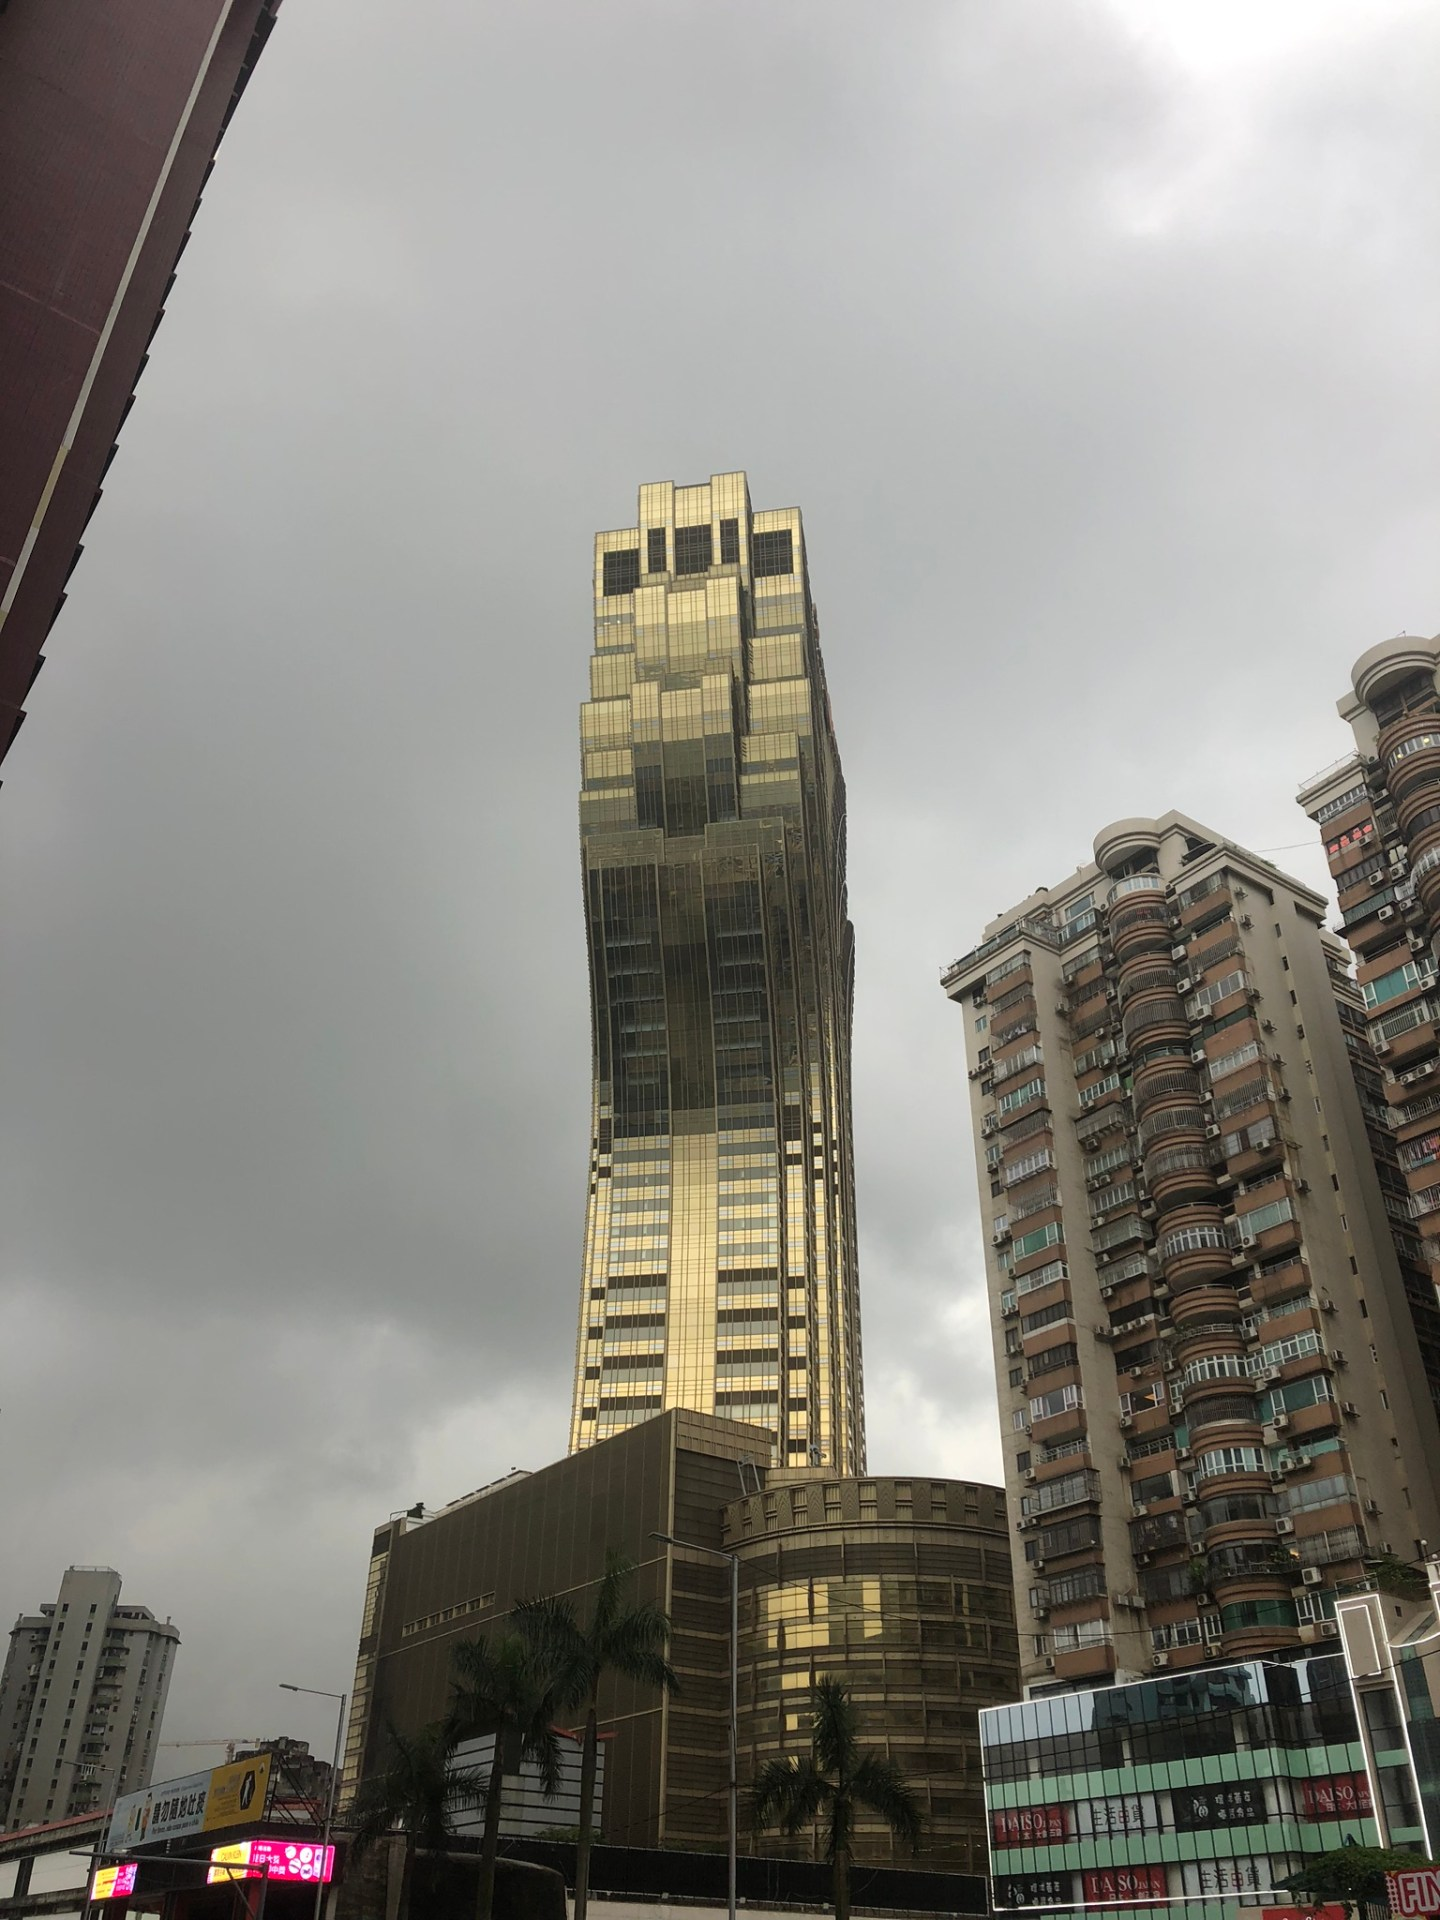 Lisboa Tower, Macau